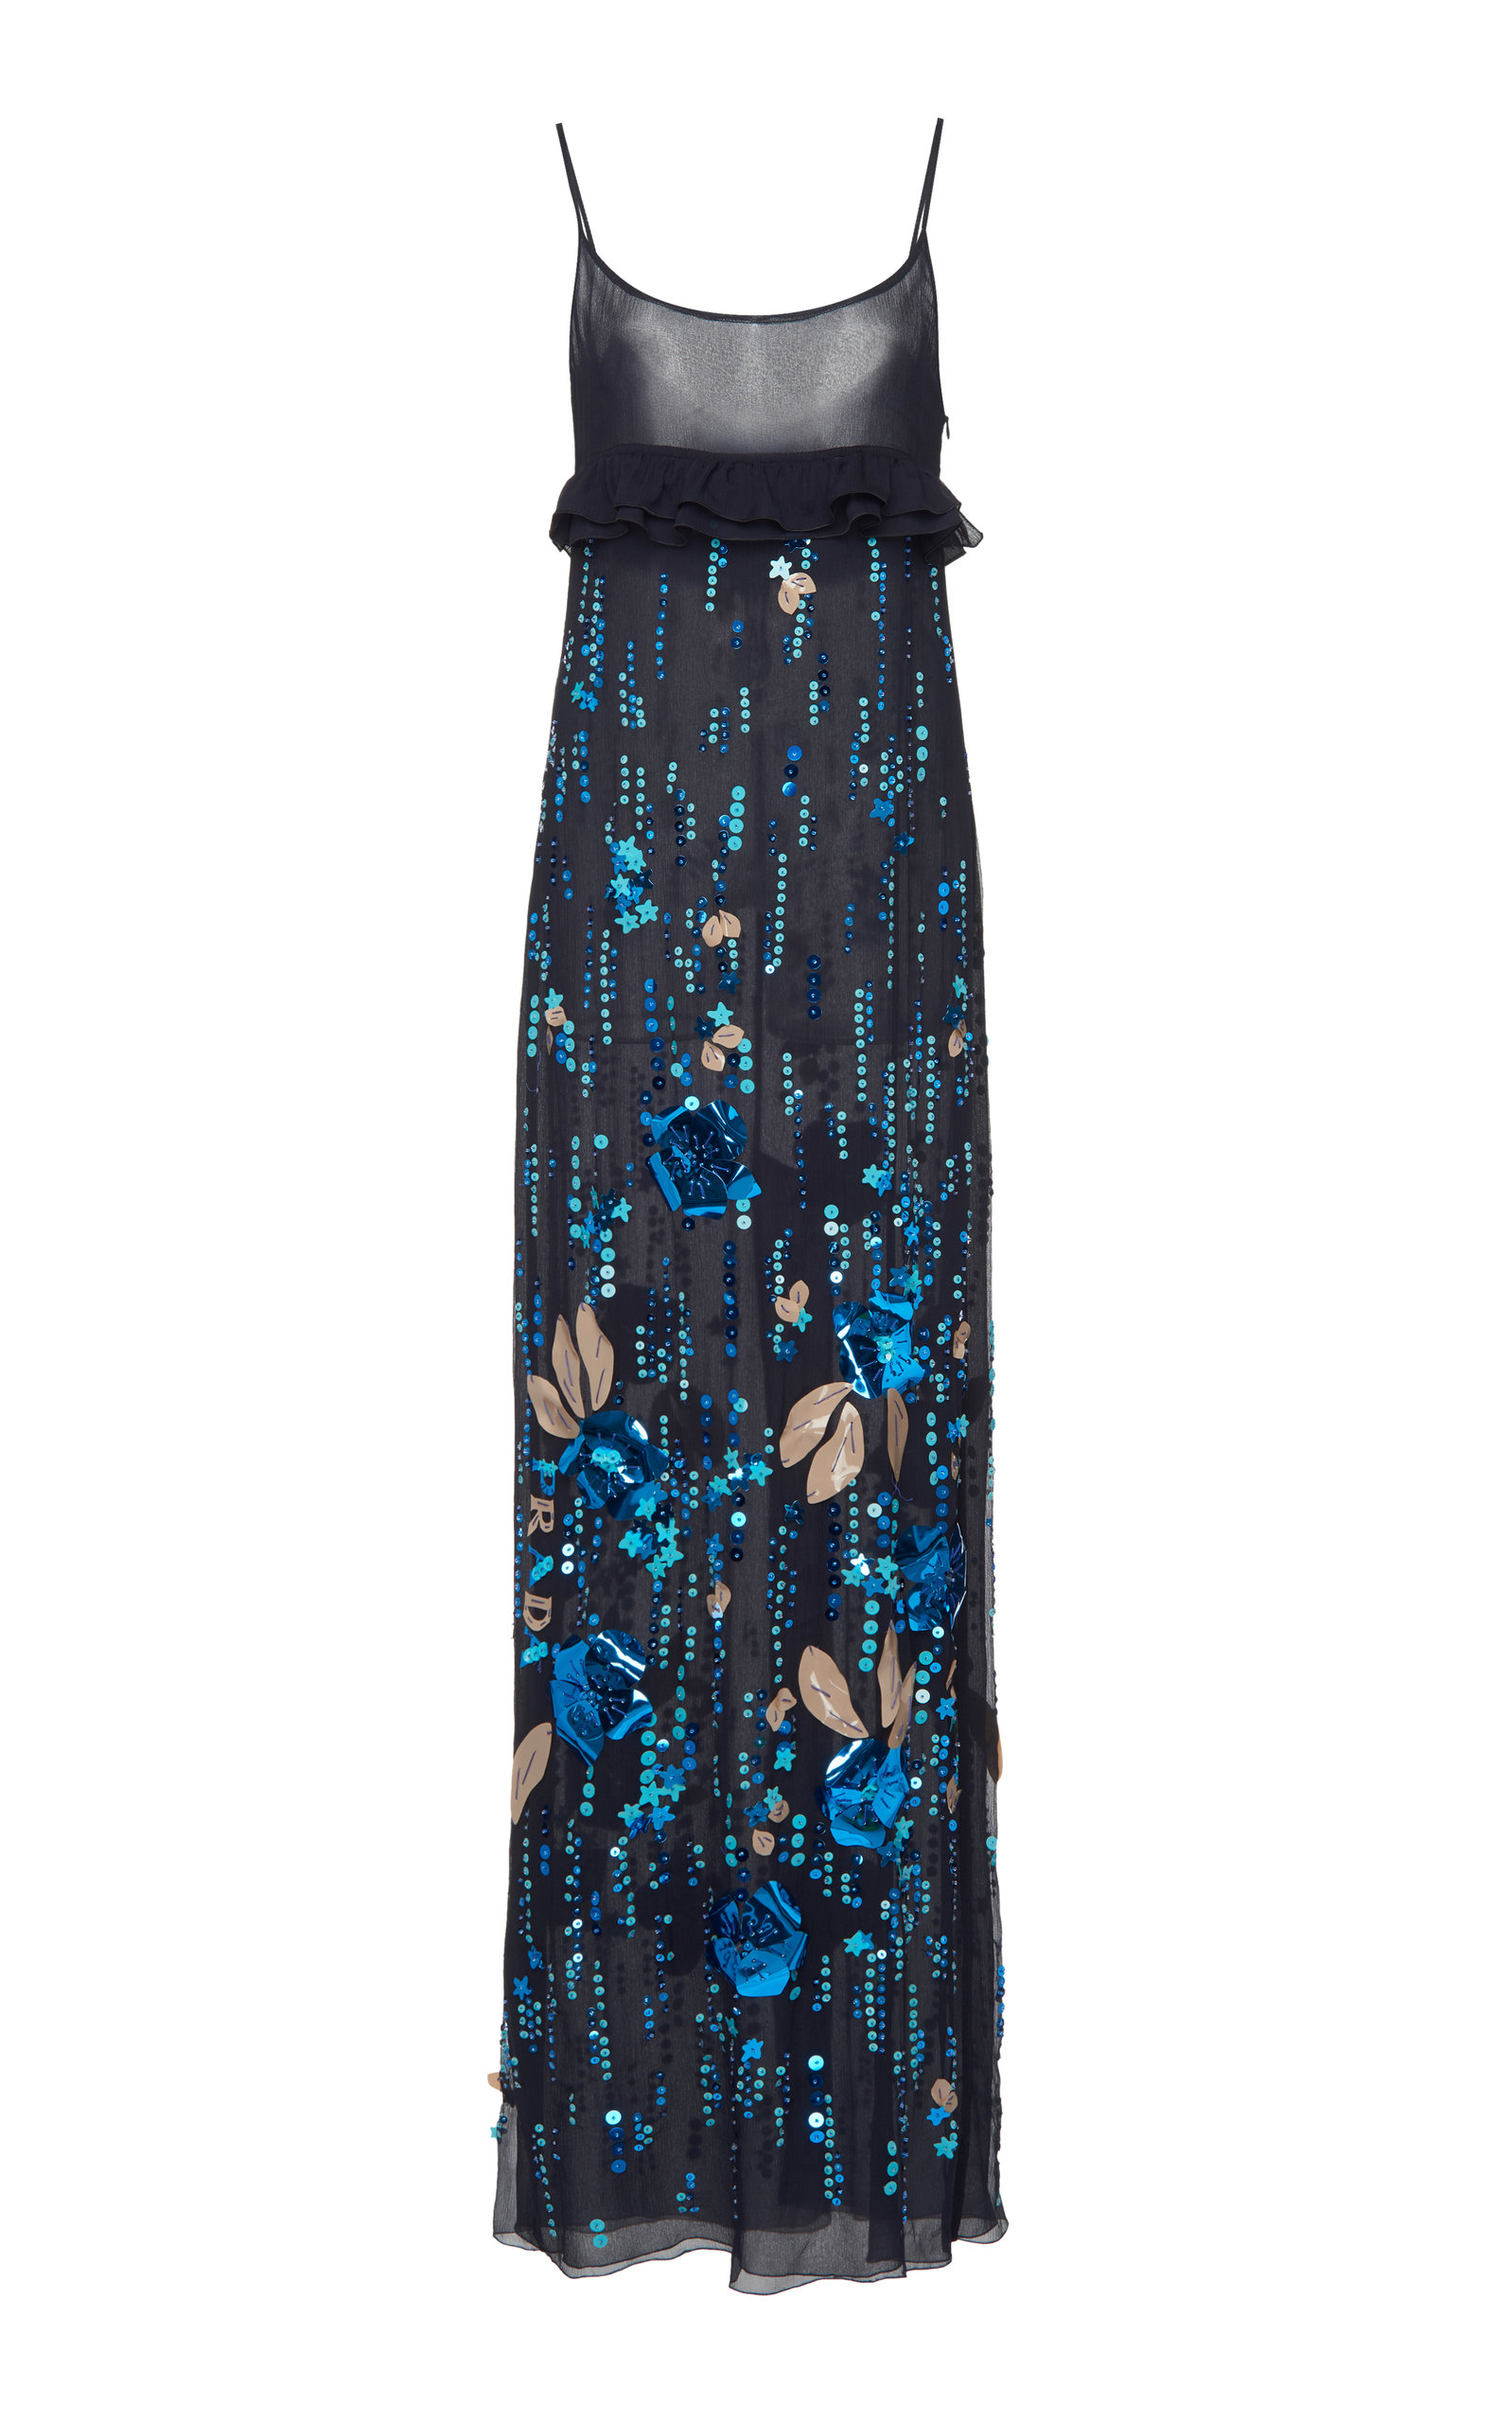 Buy Prada Ruffled Embellished Silk-Chiffon Dress online, shop Prada at the best price